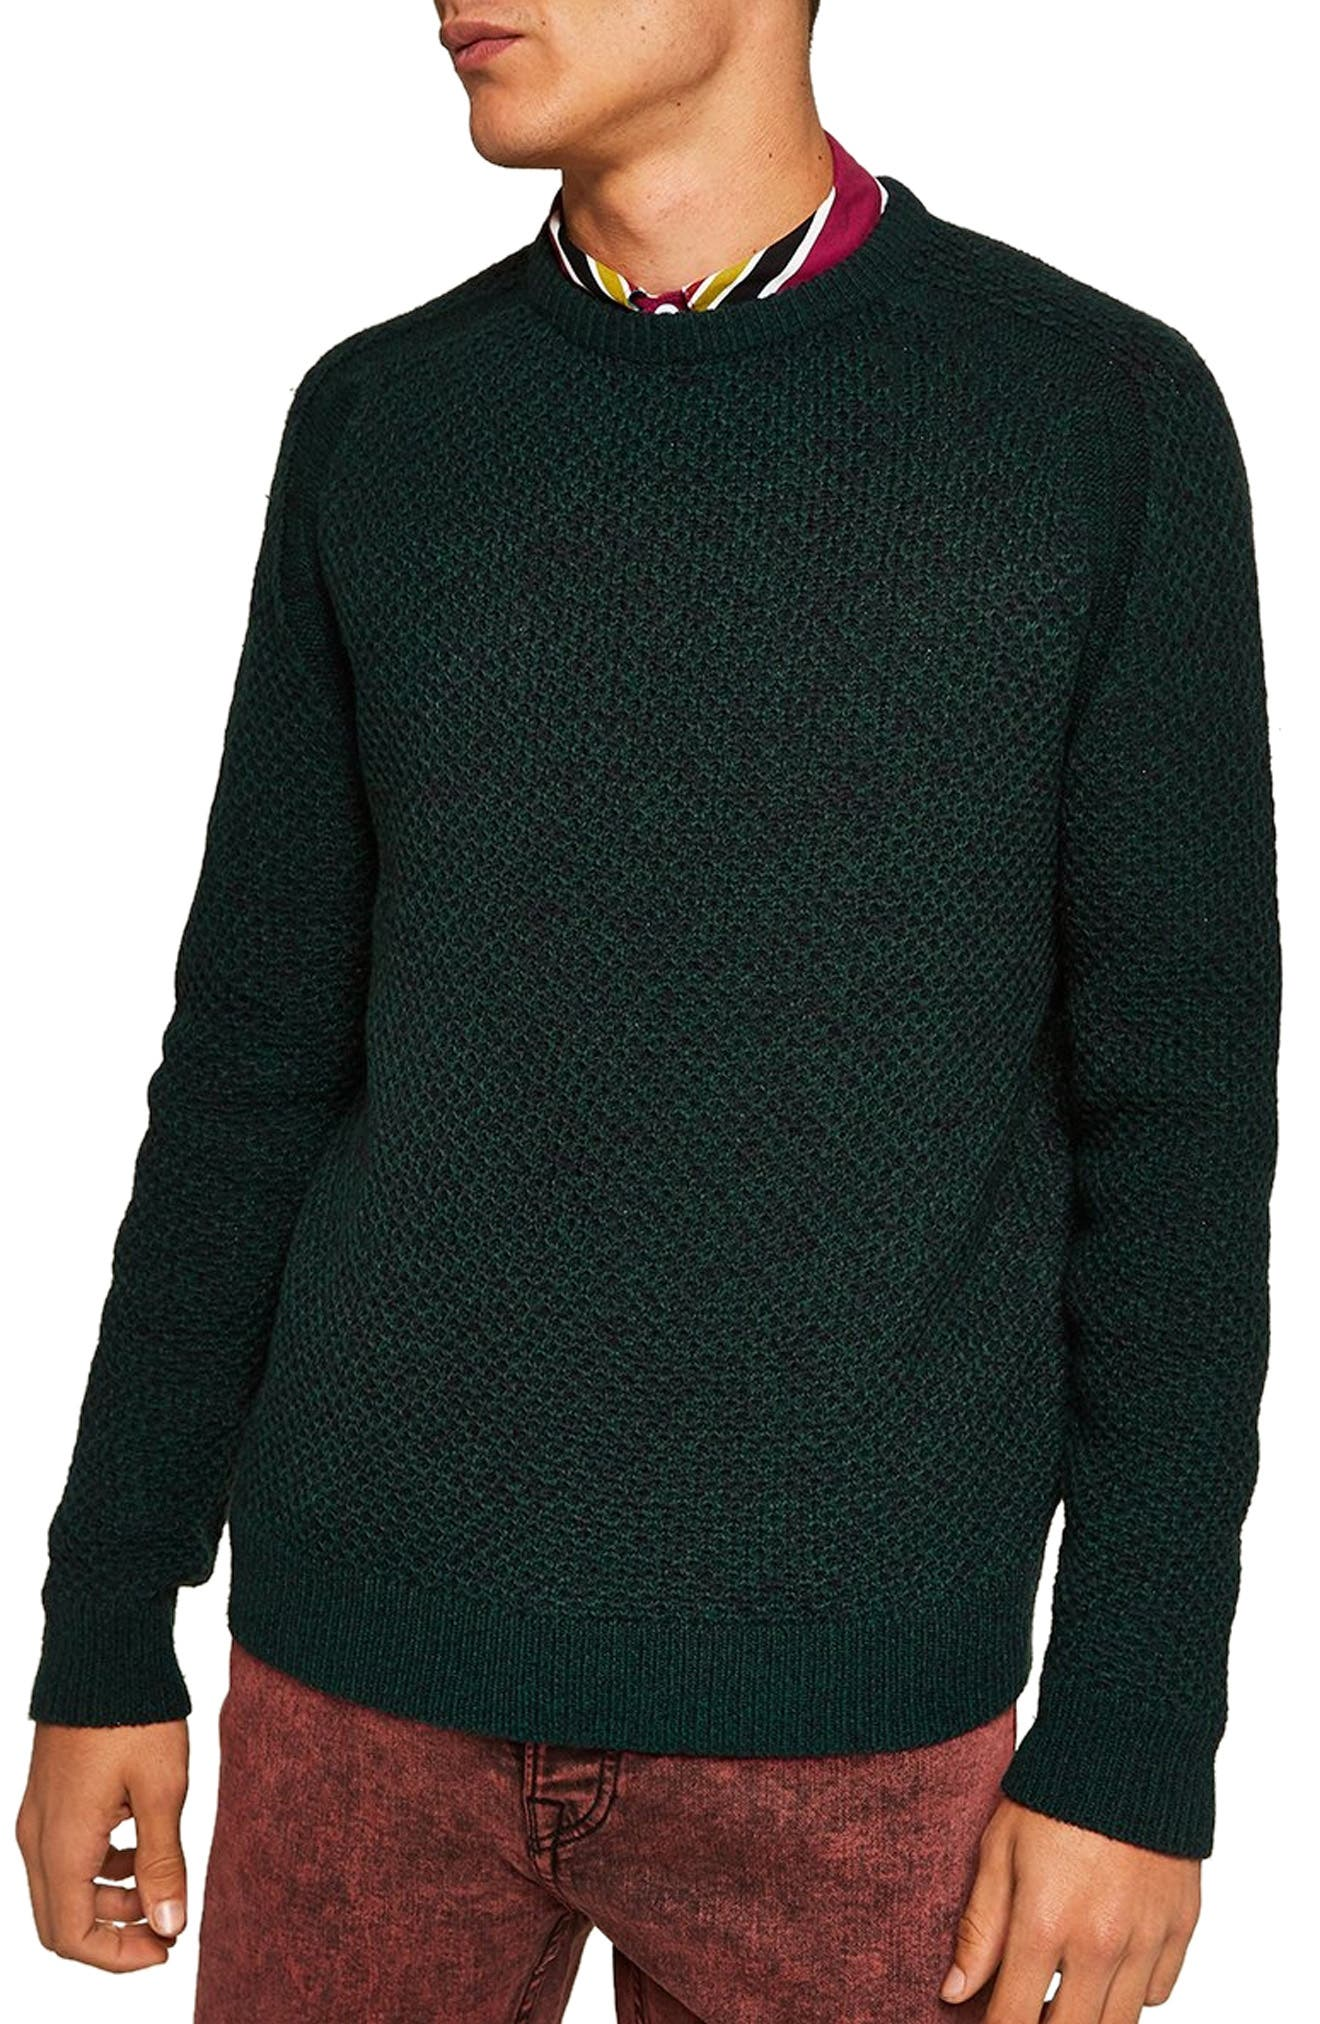 Honeycomb Classic Fit Crewneck Sweater,                             Main thumbnail 1, color,                             GREEN MULTI